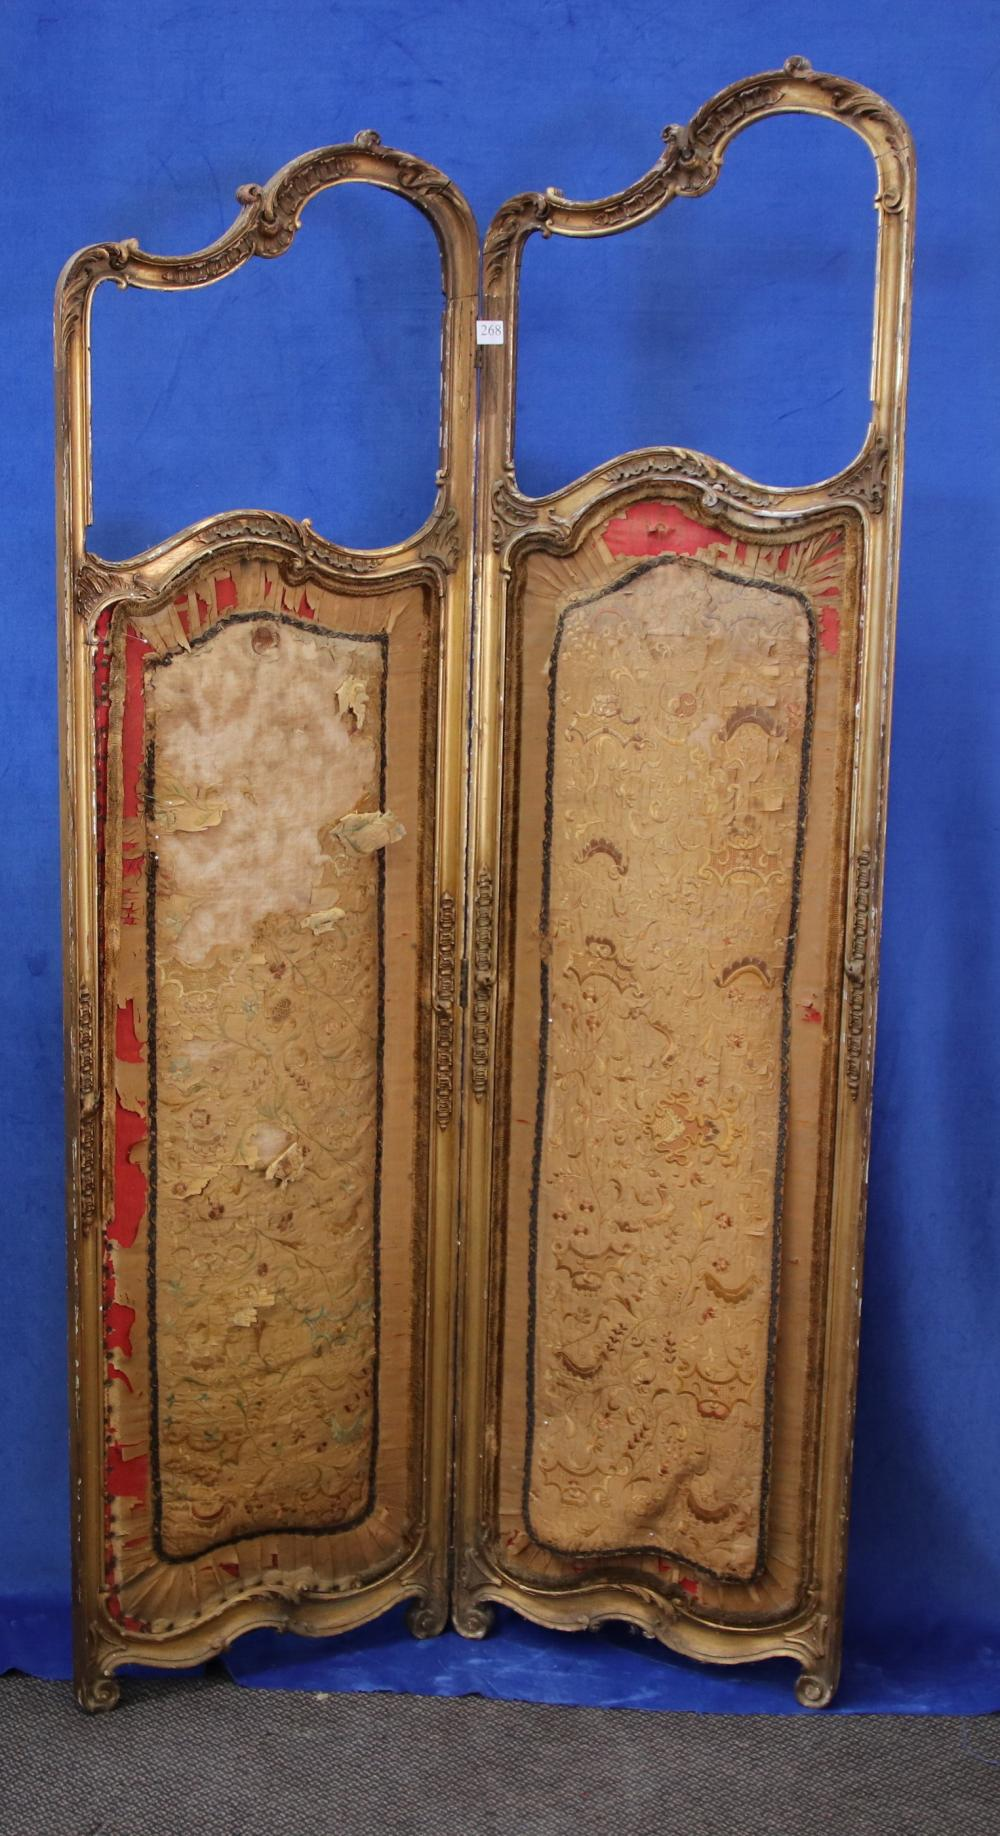 FRENCH 2 PANEL PRIVACY SCREEN, GOLD GILT FRAME WITH UPHOLSTERY CENTRE PIECE (POOR CONDITION) MEASURES 180CM H X 95CM W